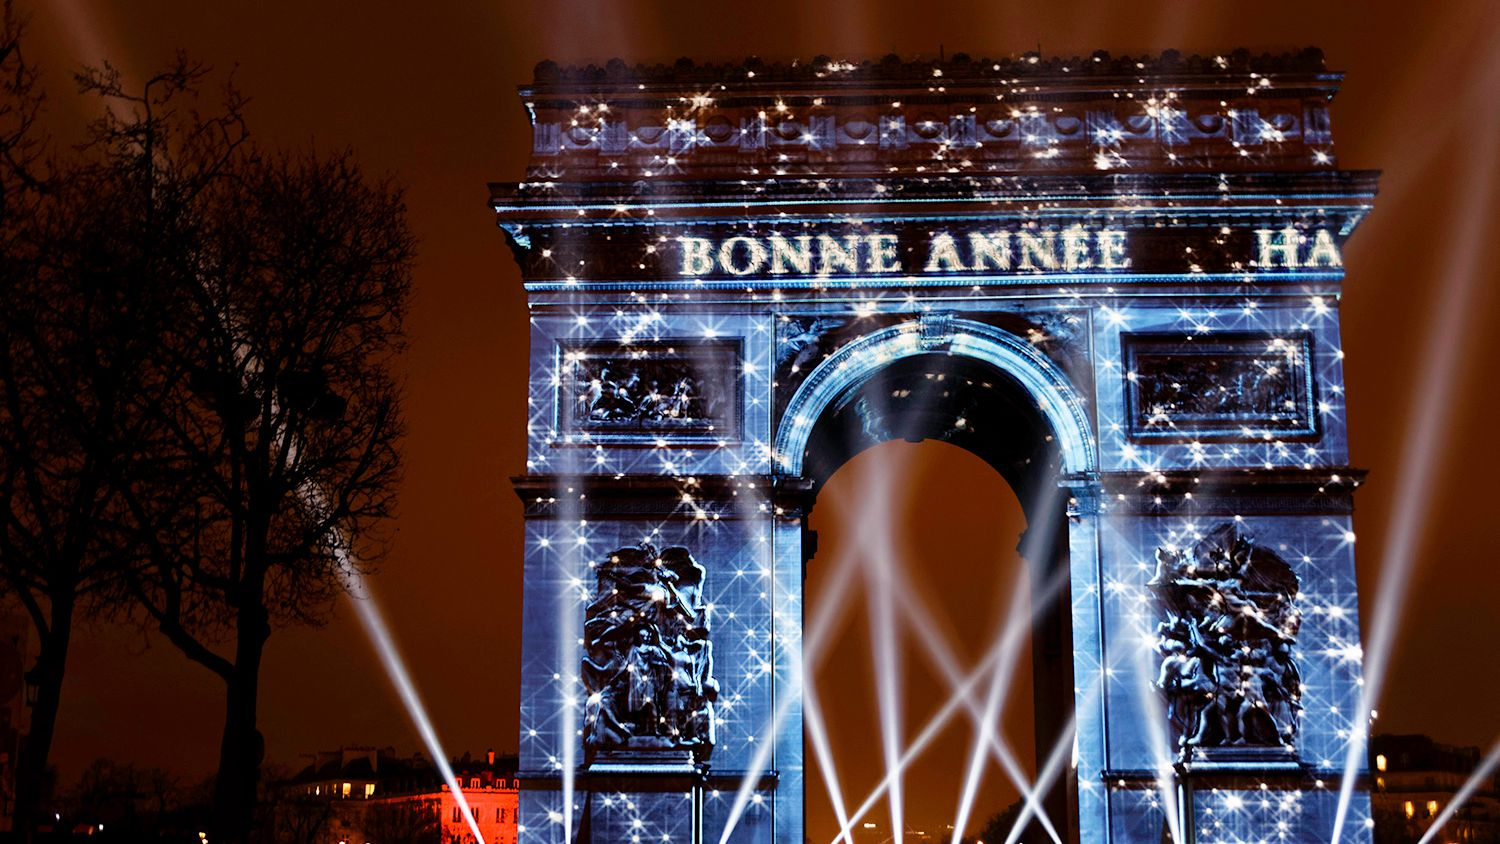 Typical New Year's Greetings in French